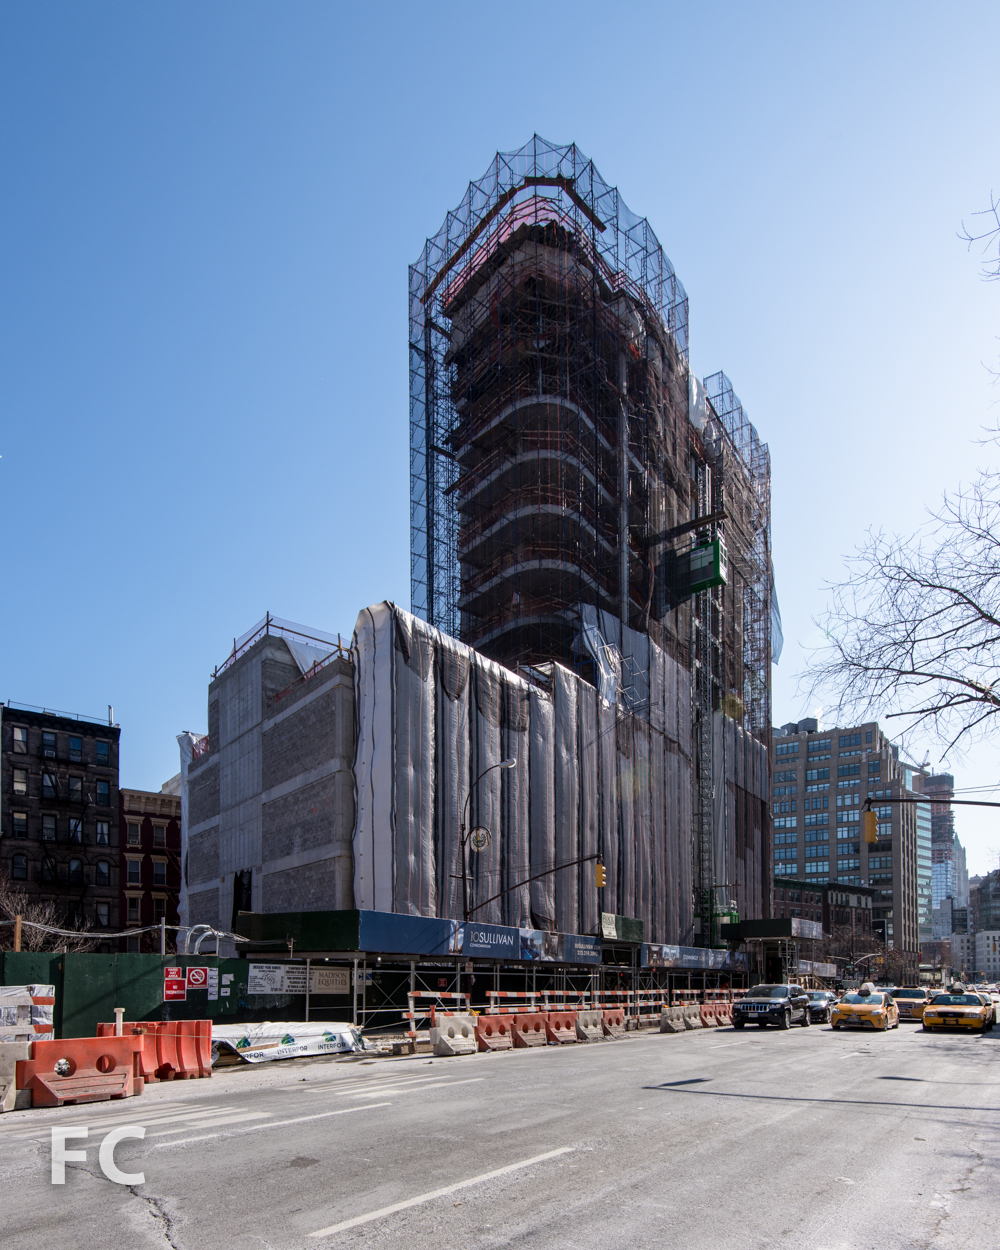 Northwest corner from Avenue of the Americas.